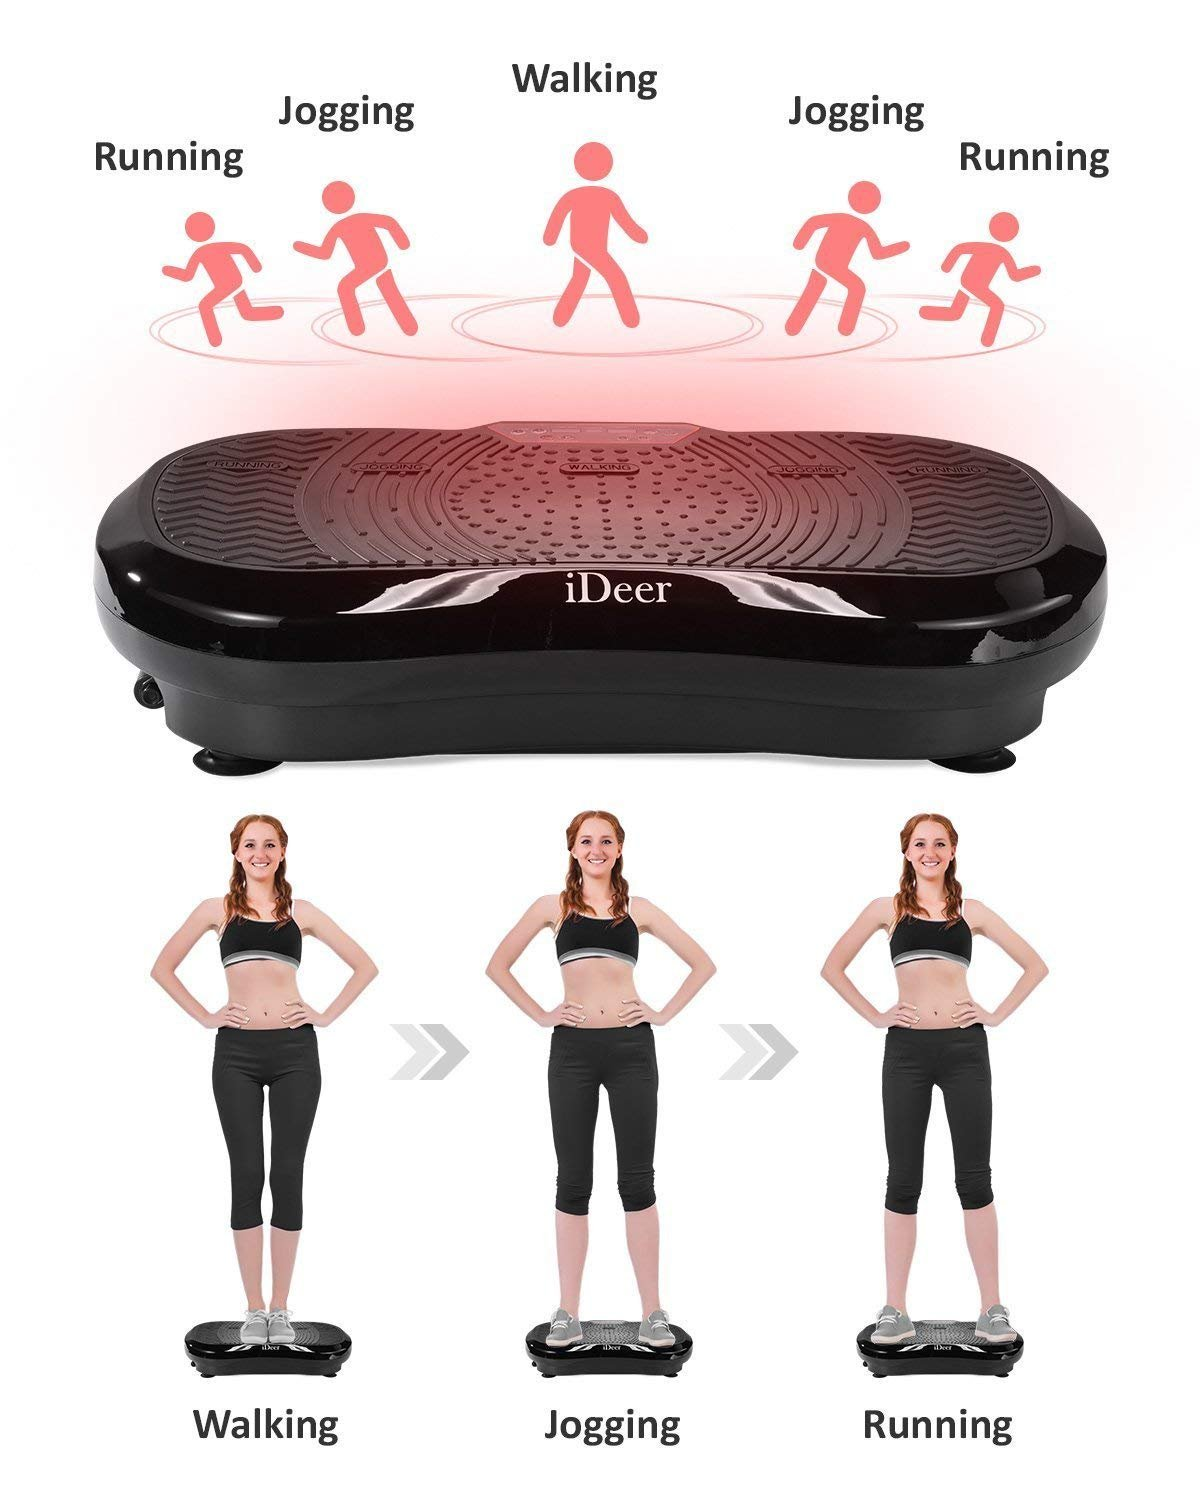 iDeer Vibration Platform Fitness Vibration Plates,Whole Body Vibration Exercise Machine w/Remote Control &Bands,Anti-Slip Fit Massage Workout Vibration Trainer Max User Weight 330lbs (Black09001) by IDEER LIFE (Image #3)